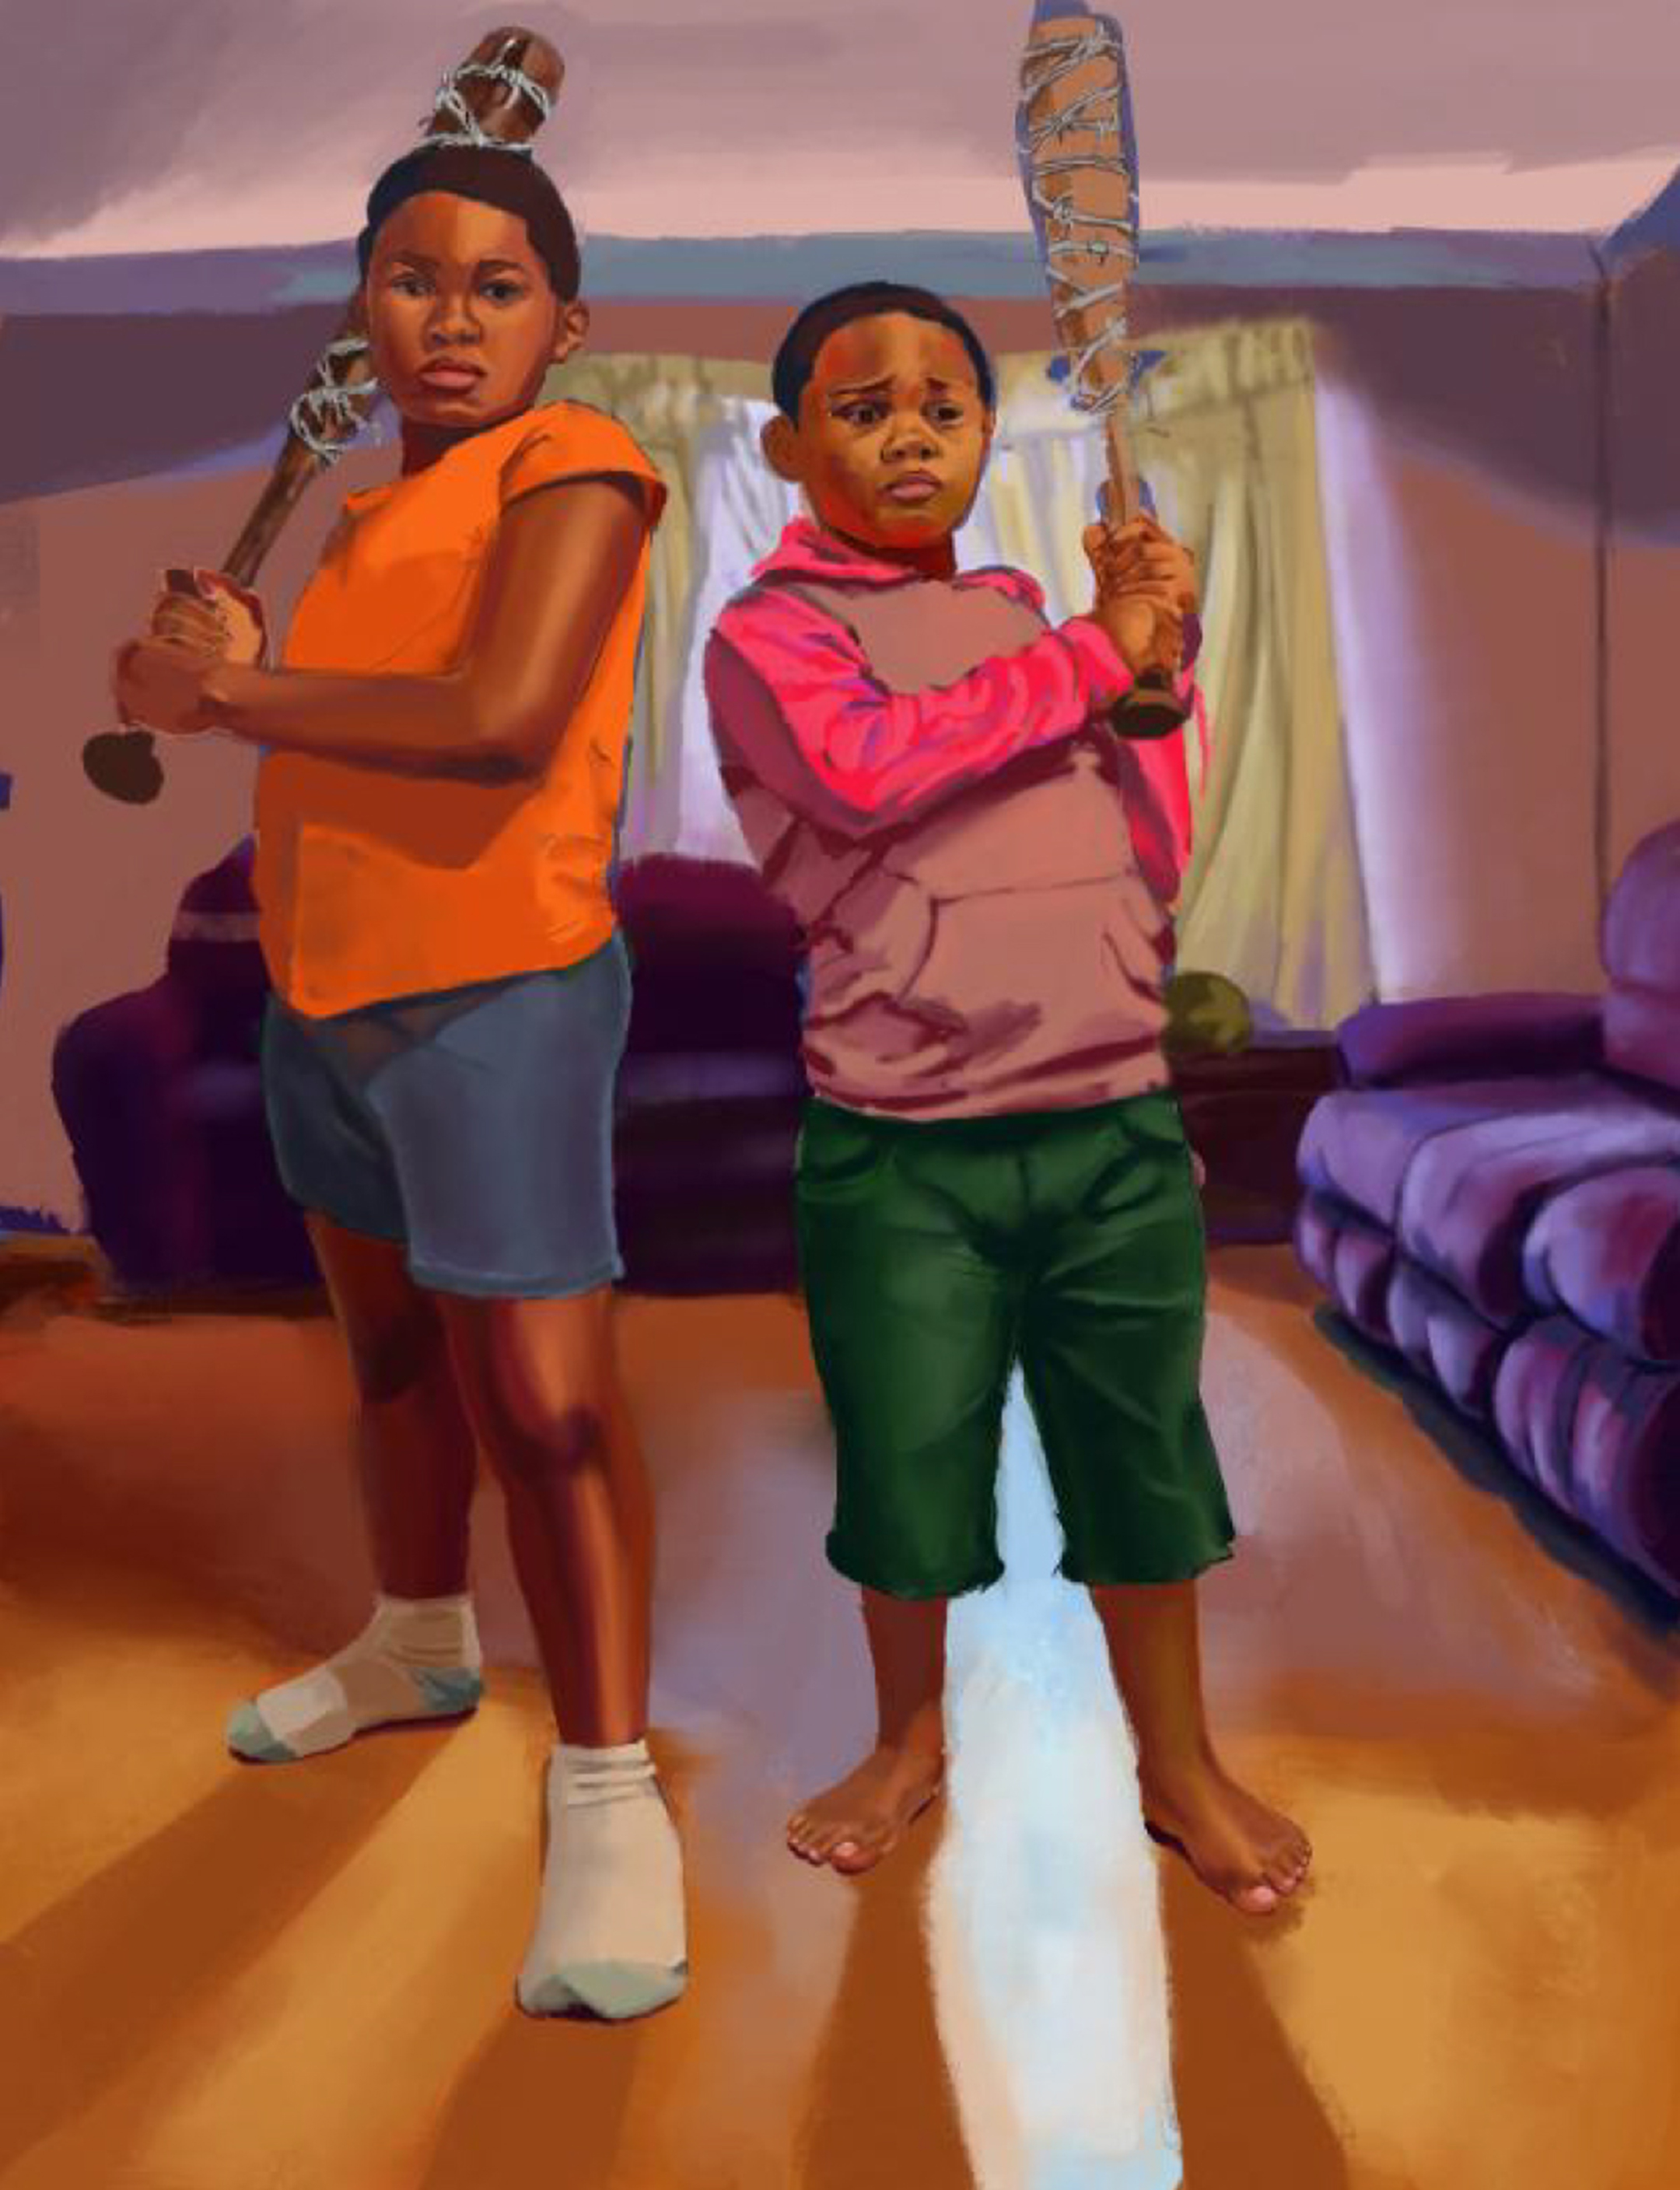 Digital illustration of two young black kids standing in a living room holding baseball bats